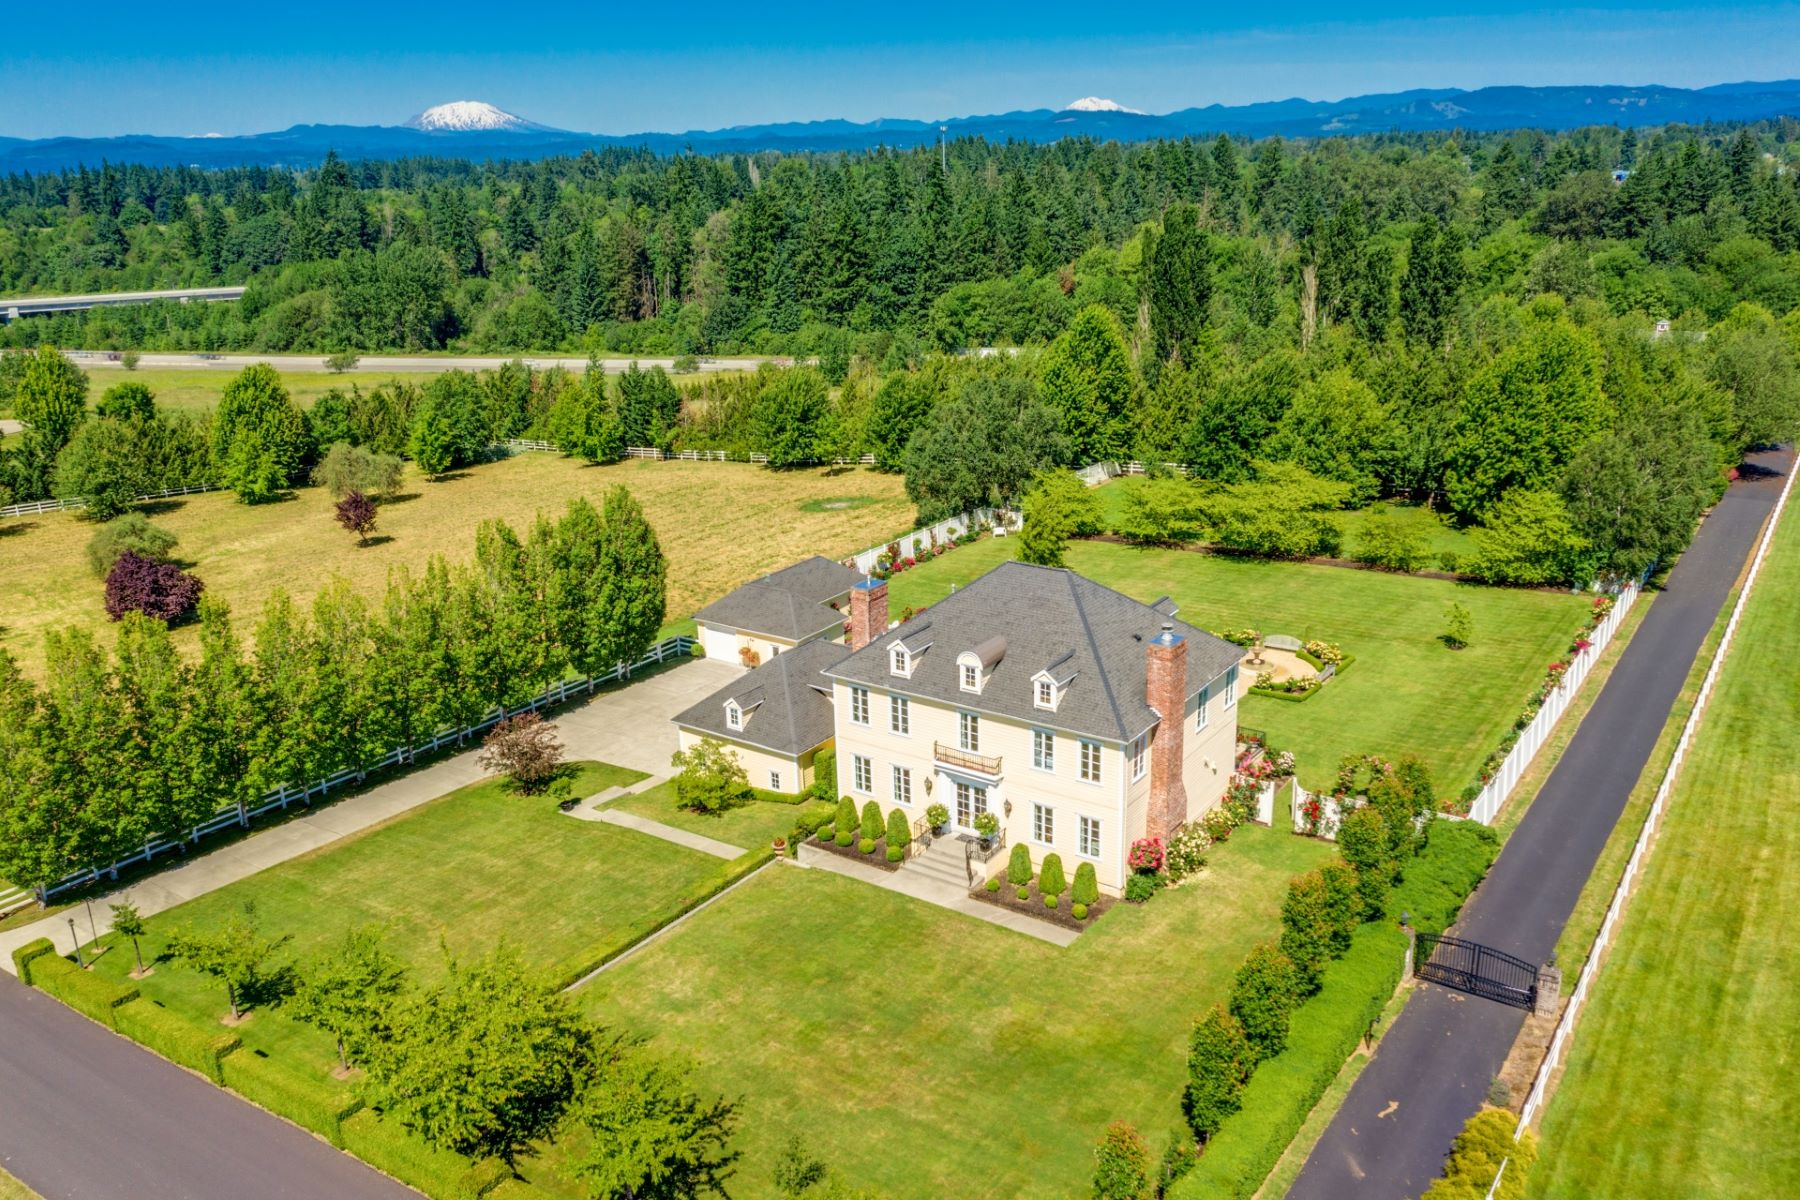 Other Residential Homes for Sale at 21501 NW 5TH AVE Ridgefield, WA 98642 21501 NW 5TH AVE Ridgefield, Washington 98642 United States